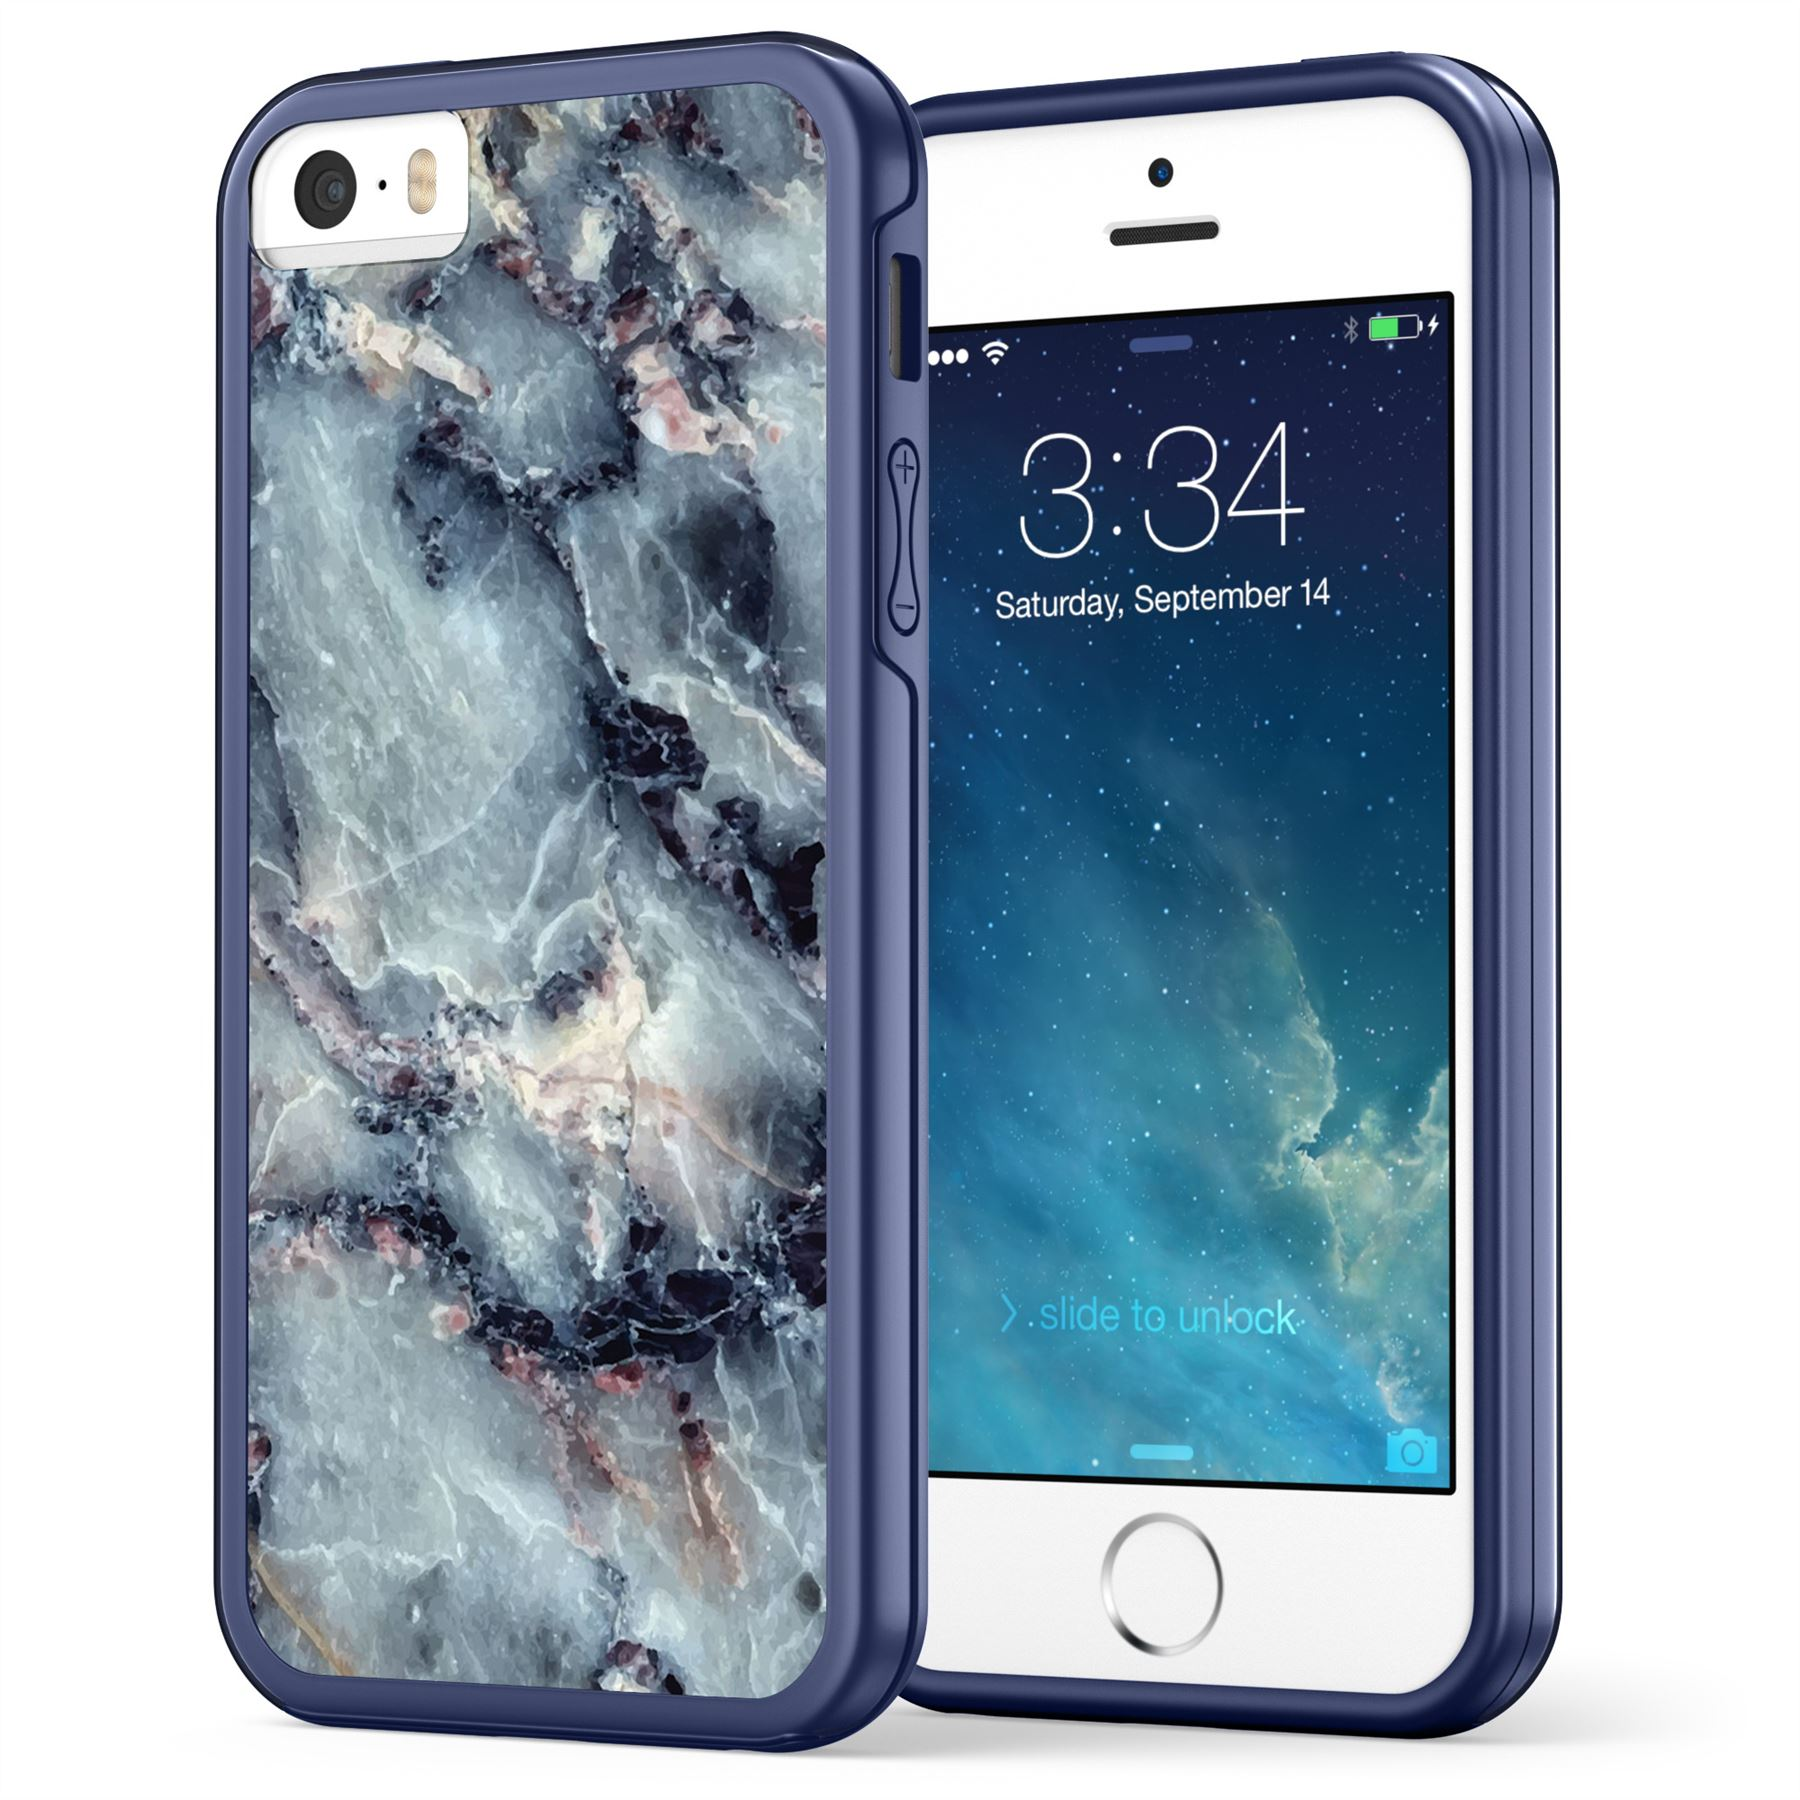 iPhone SE / 5S / 5 Case, True Color® Grayish Blue Marble [Stone Texture Collection] Slim Hybrid Hard Back + Soft TPU Bumper Protective Durable [True Impact Series] Apple iPhone 5 / 5S